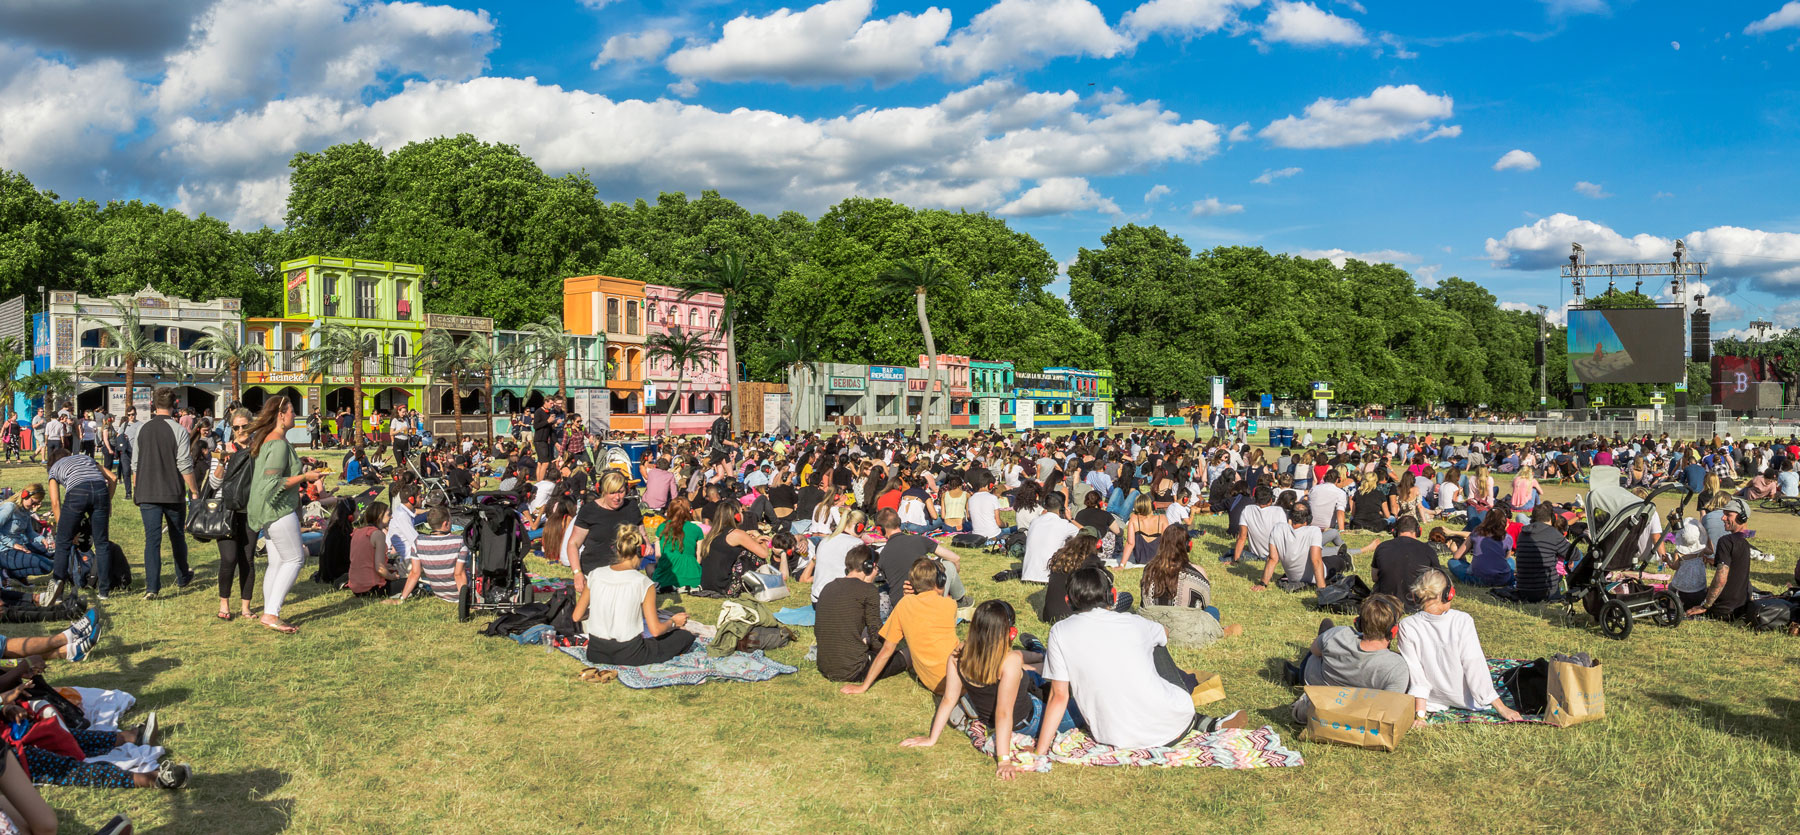 British Summer Time returns to Hyde Park 2019